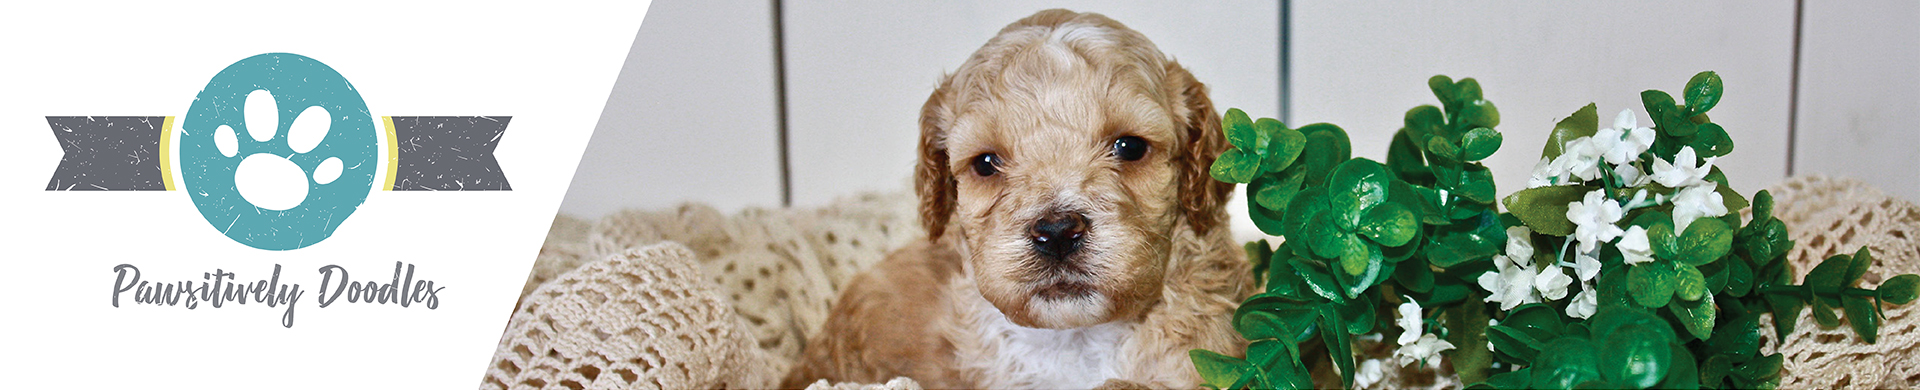 Alberta Puppies For Sale Pawsitivelydoodles